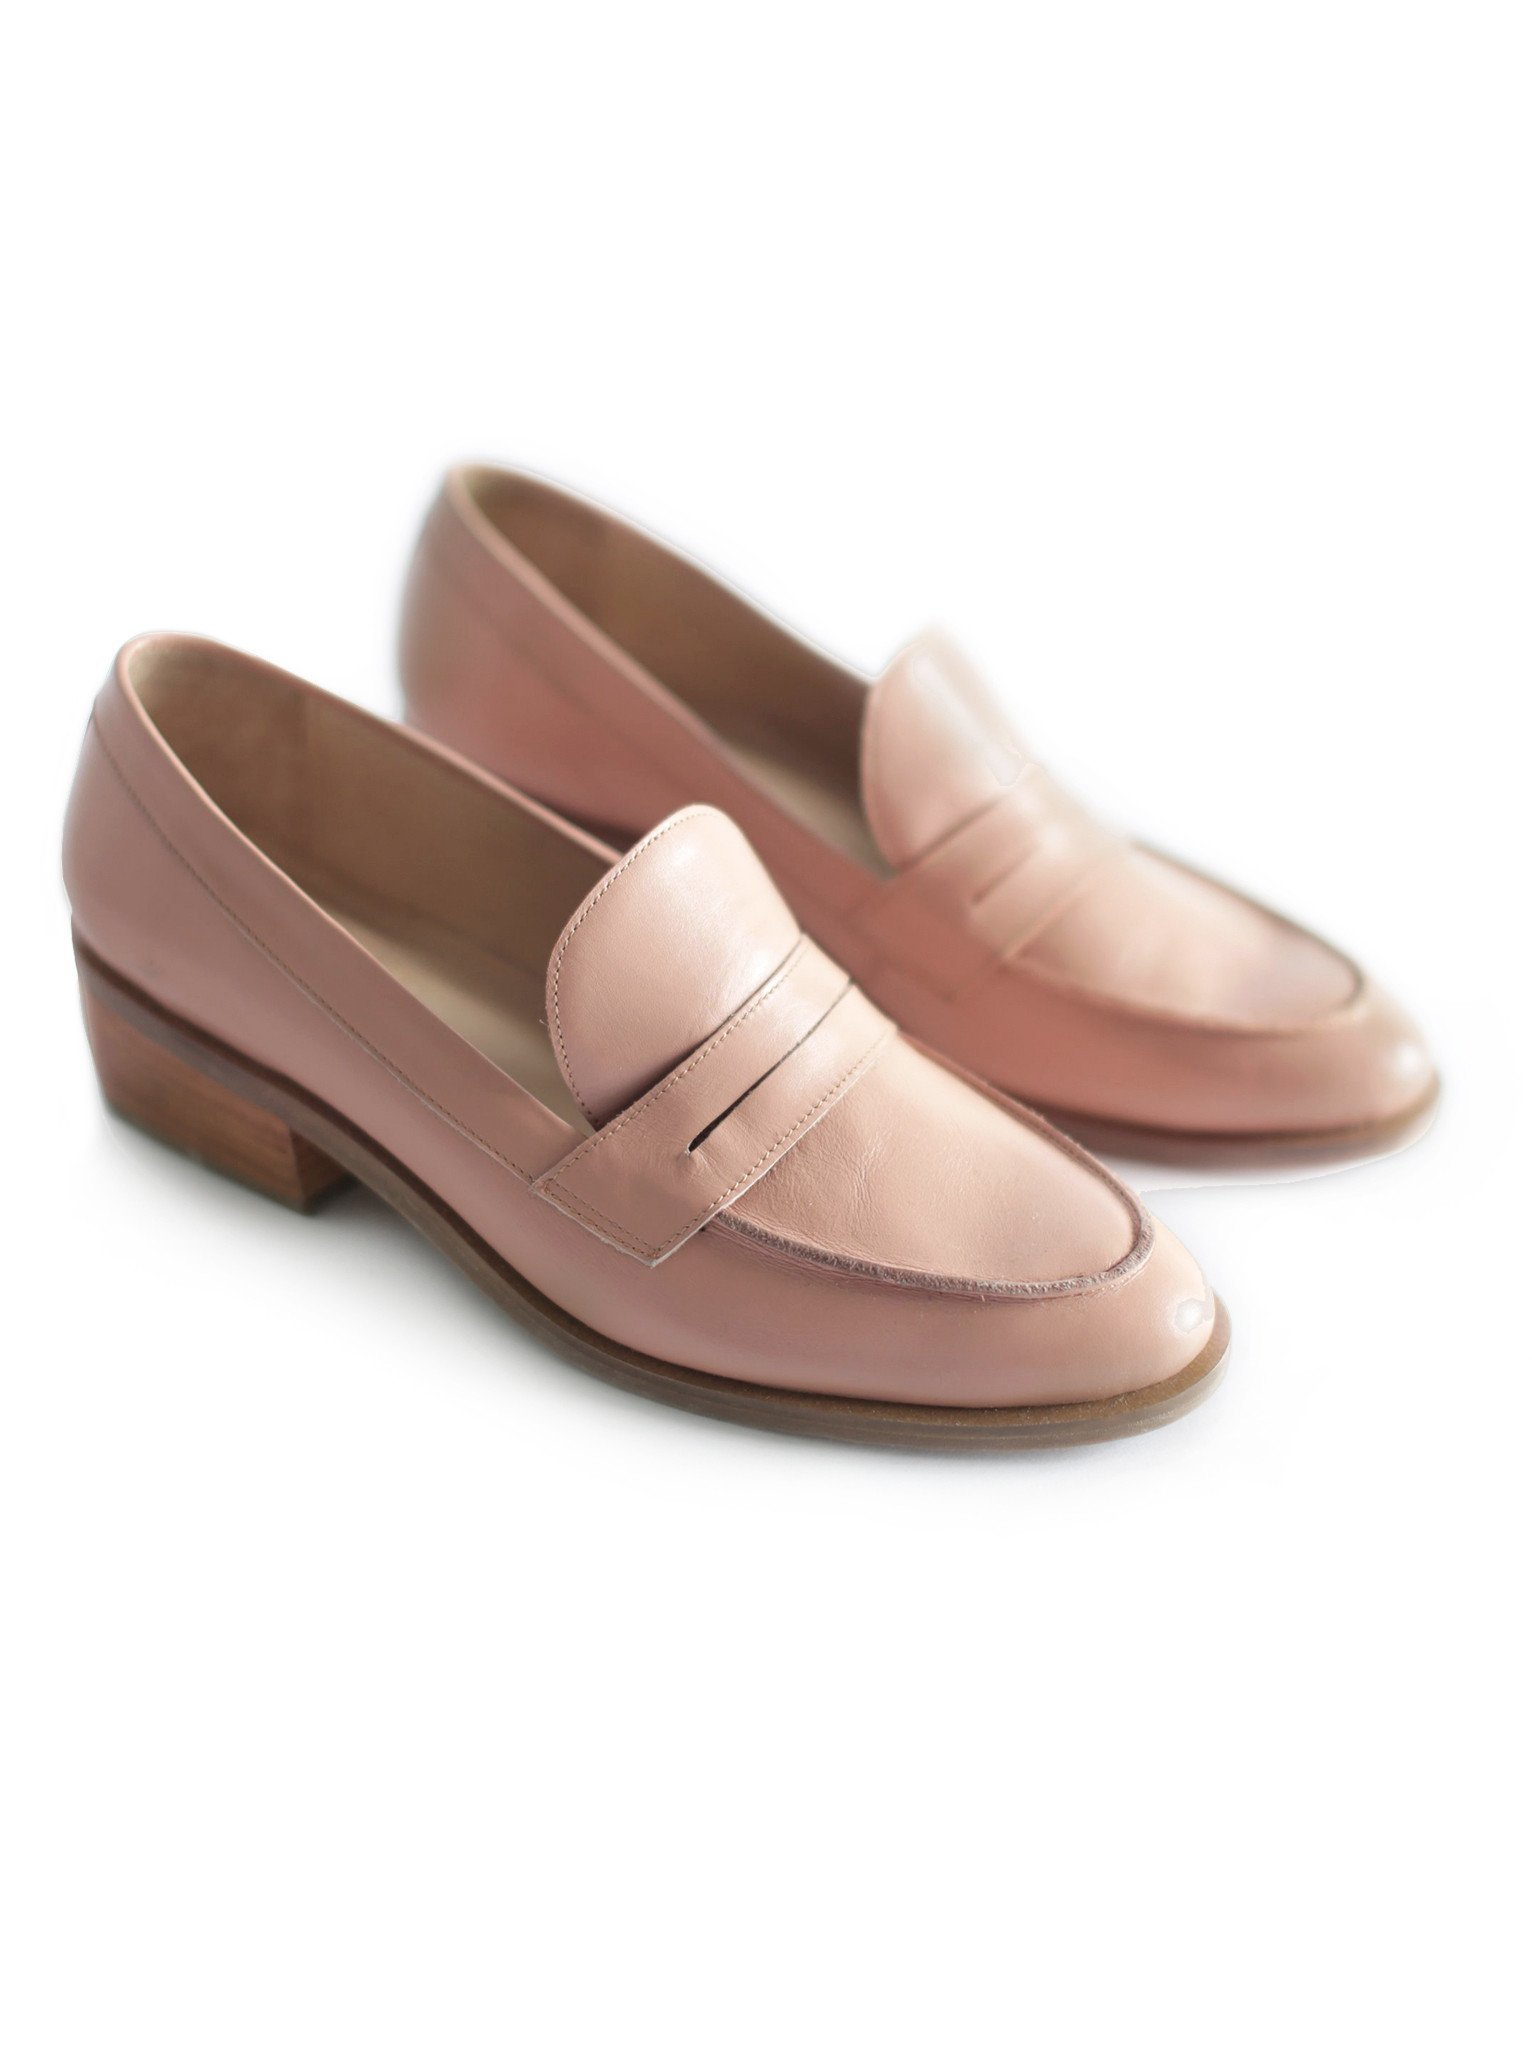 Desert Rose Loafer - ABLE | $118 (on sale!)I had to include these adorable loafers that are perfect for spring. These are on sale so there's limited sizing- grab them before they're gone!